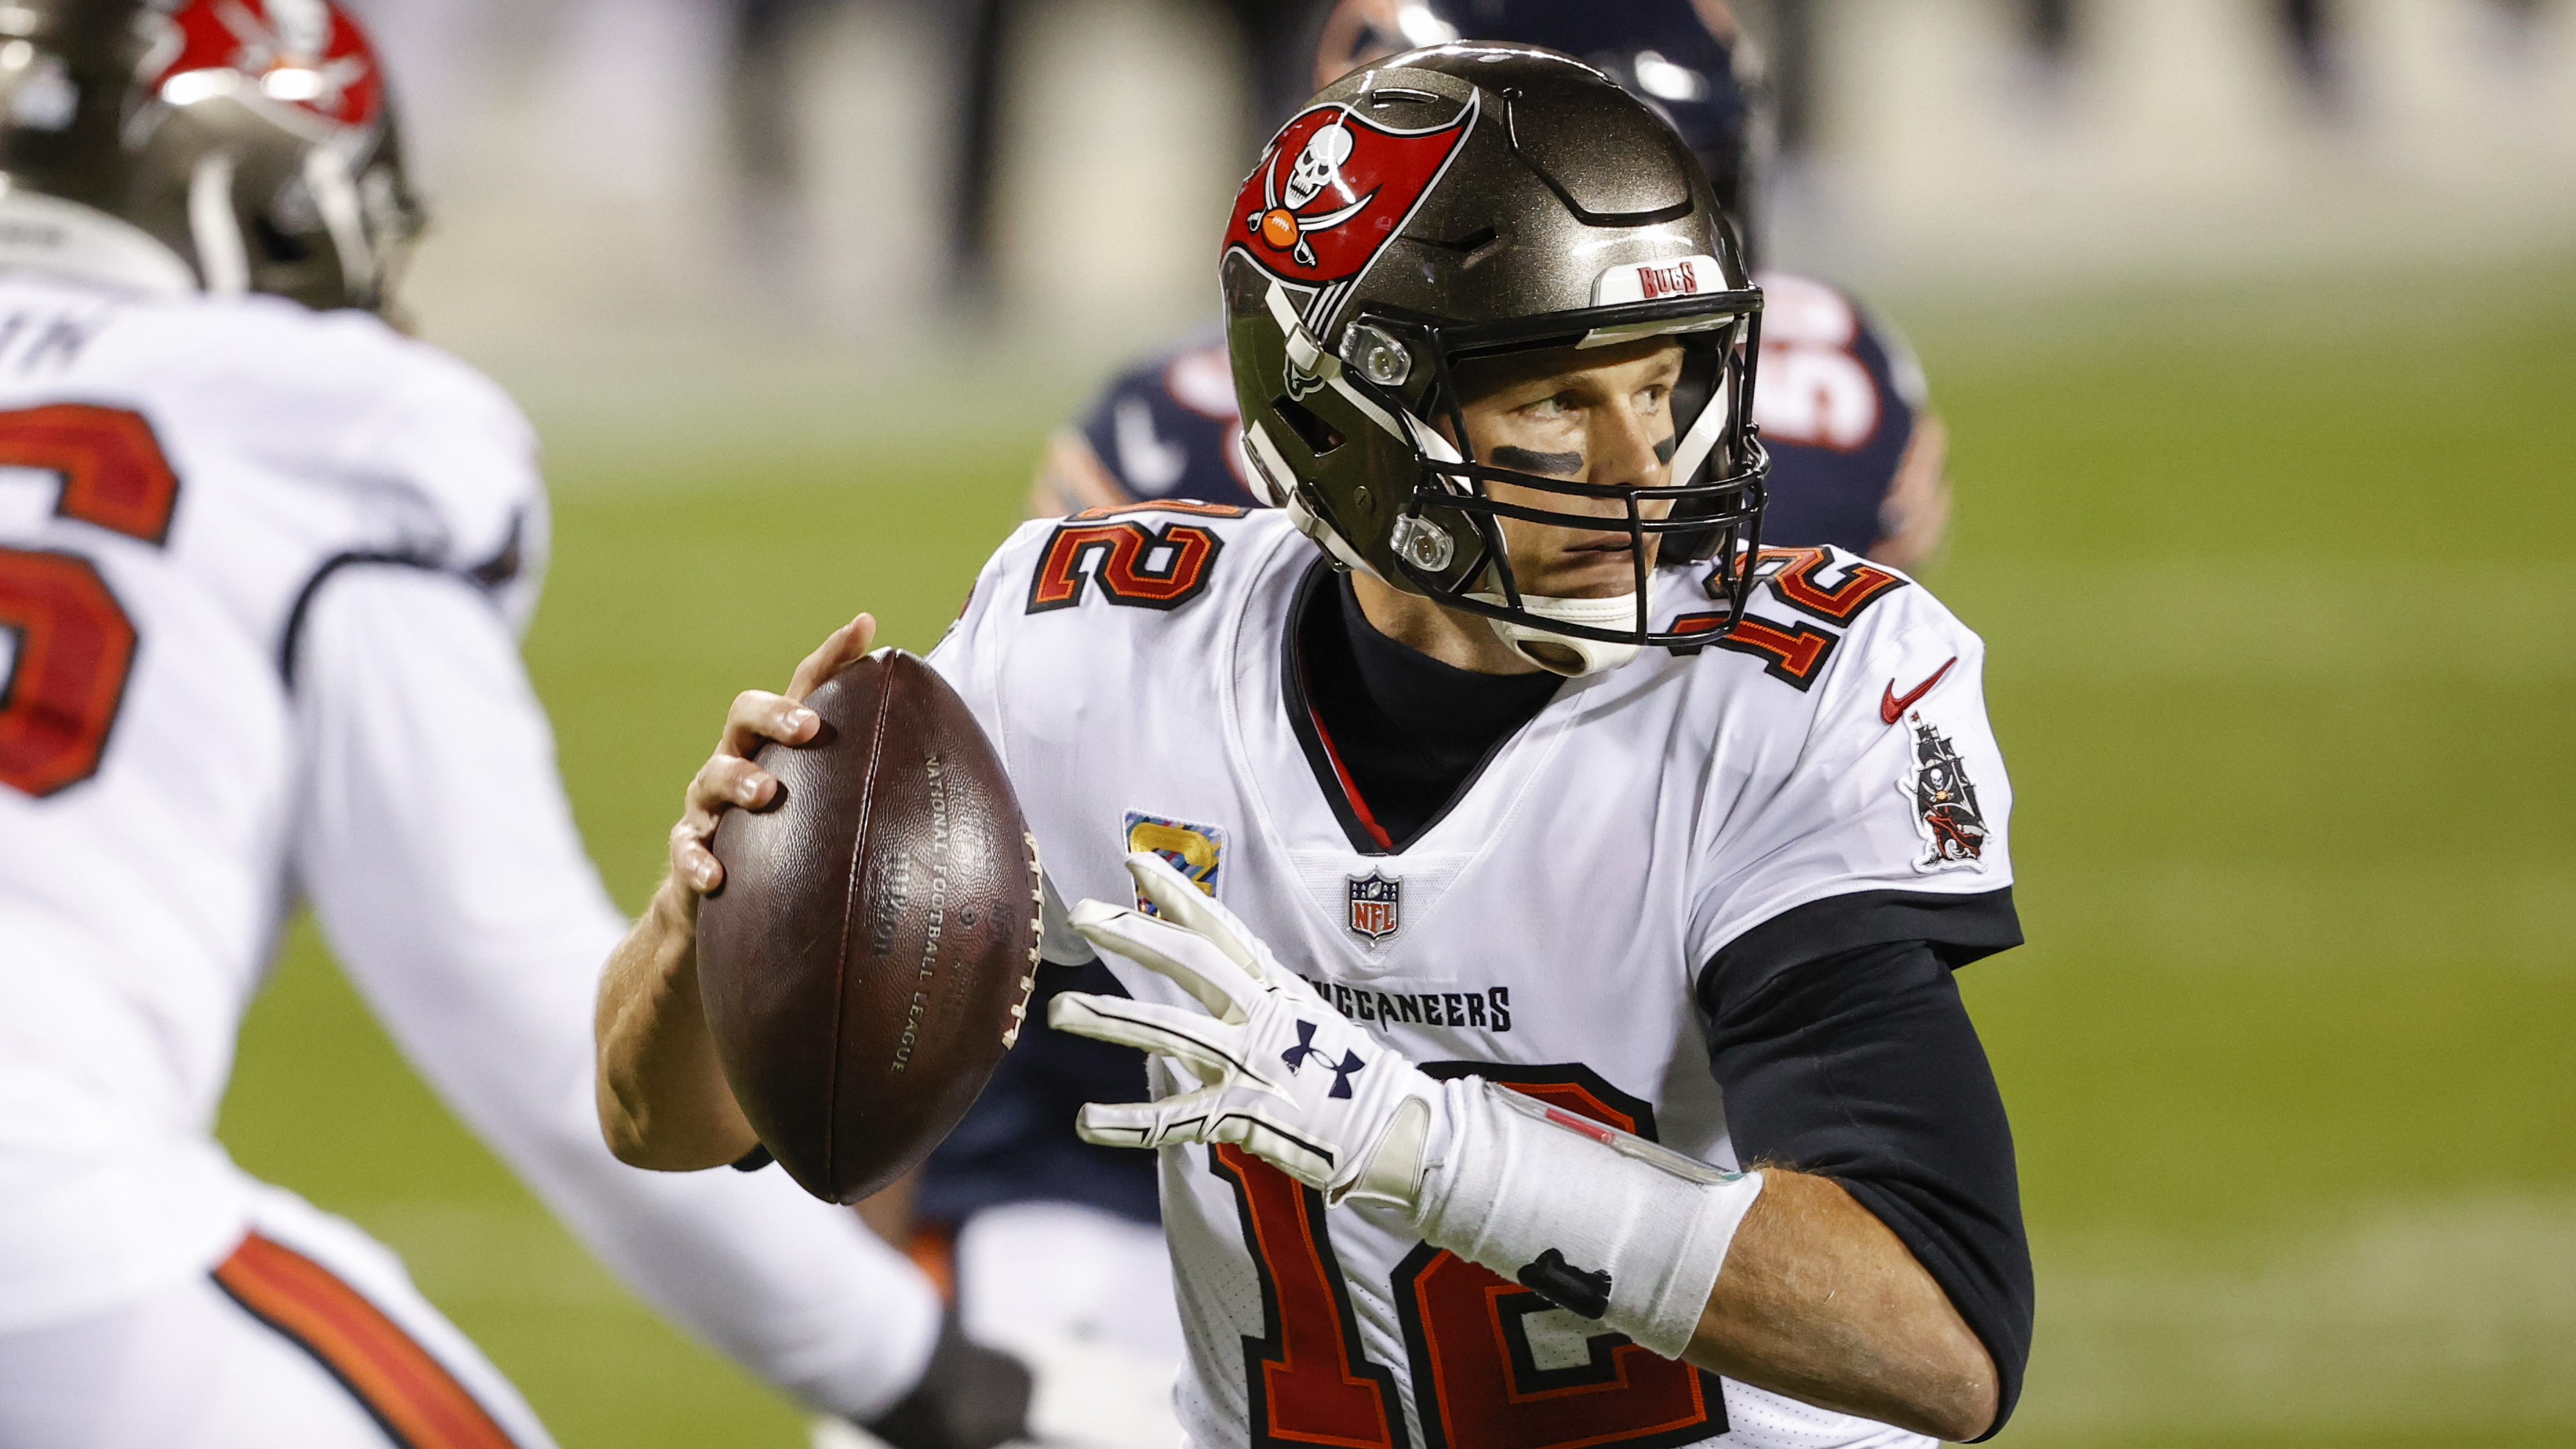 Buccaneers quarterback Tom Brady (12) completed 25-of-41 passes for 253 yards, one touchdown and no interceptions for an 86.7 passer rating in a 20-19 loss to the Bears last year at Soldier Field.